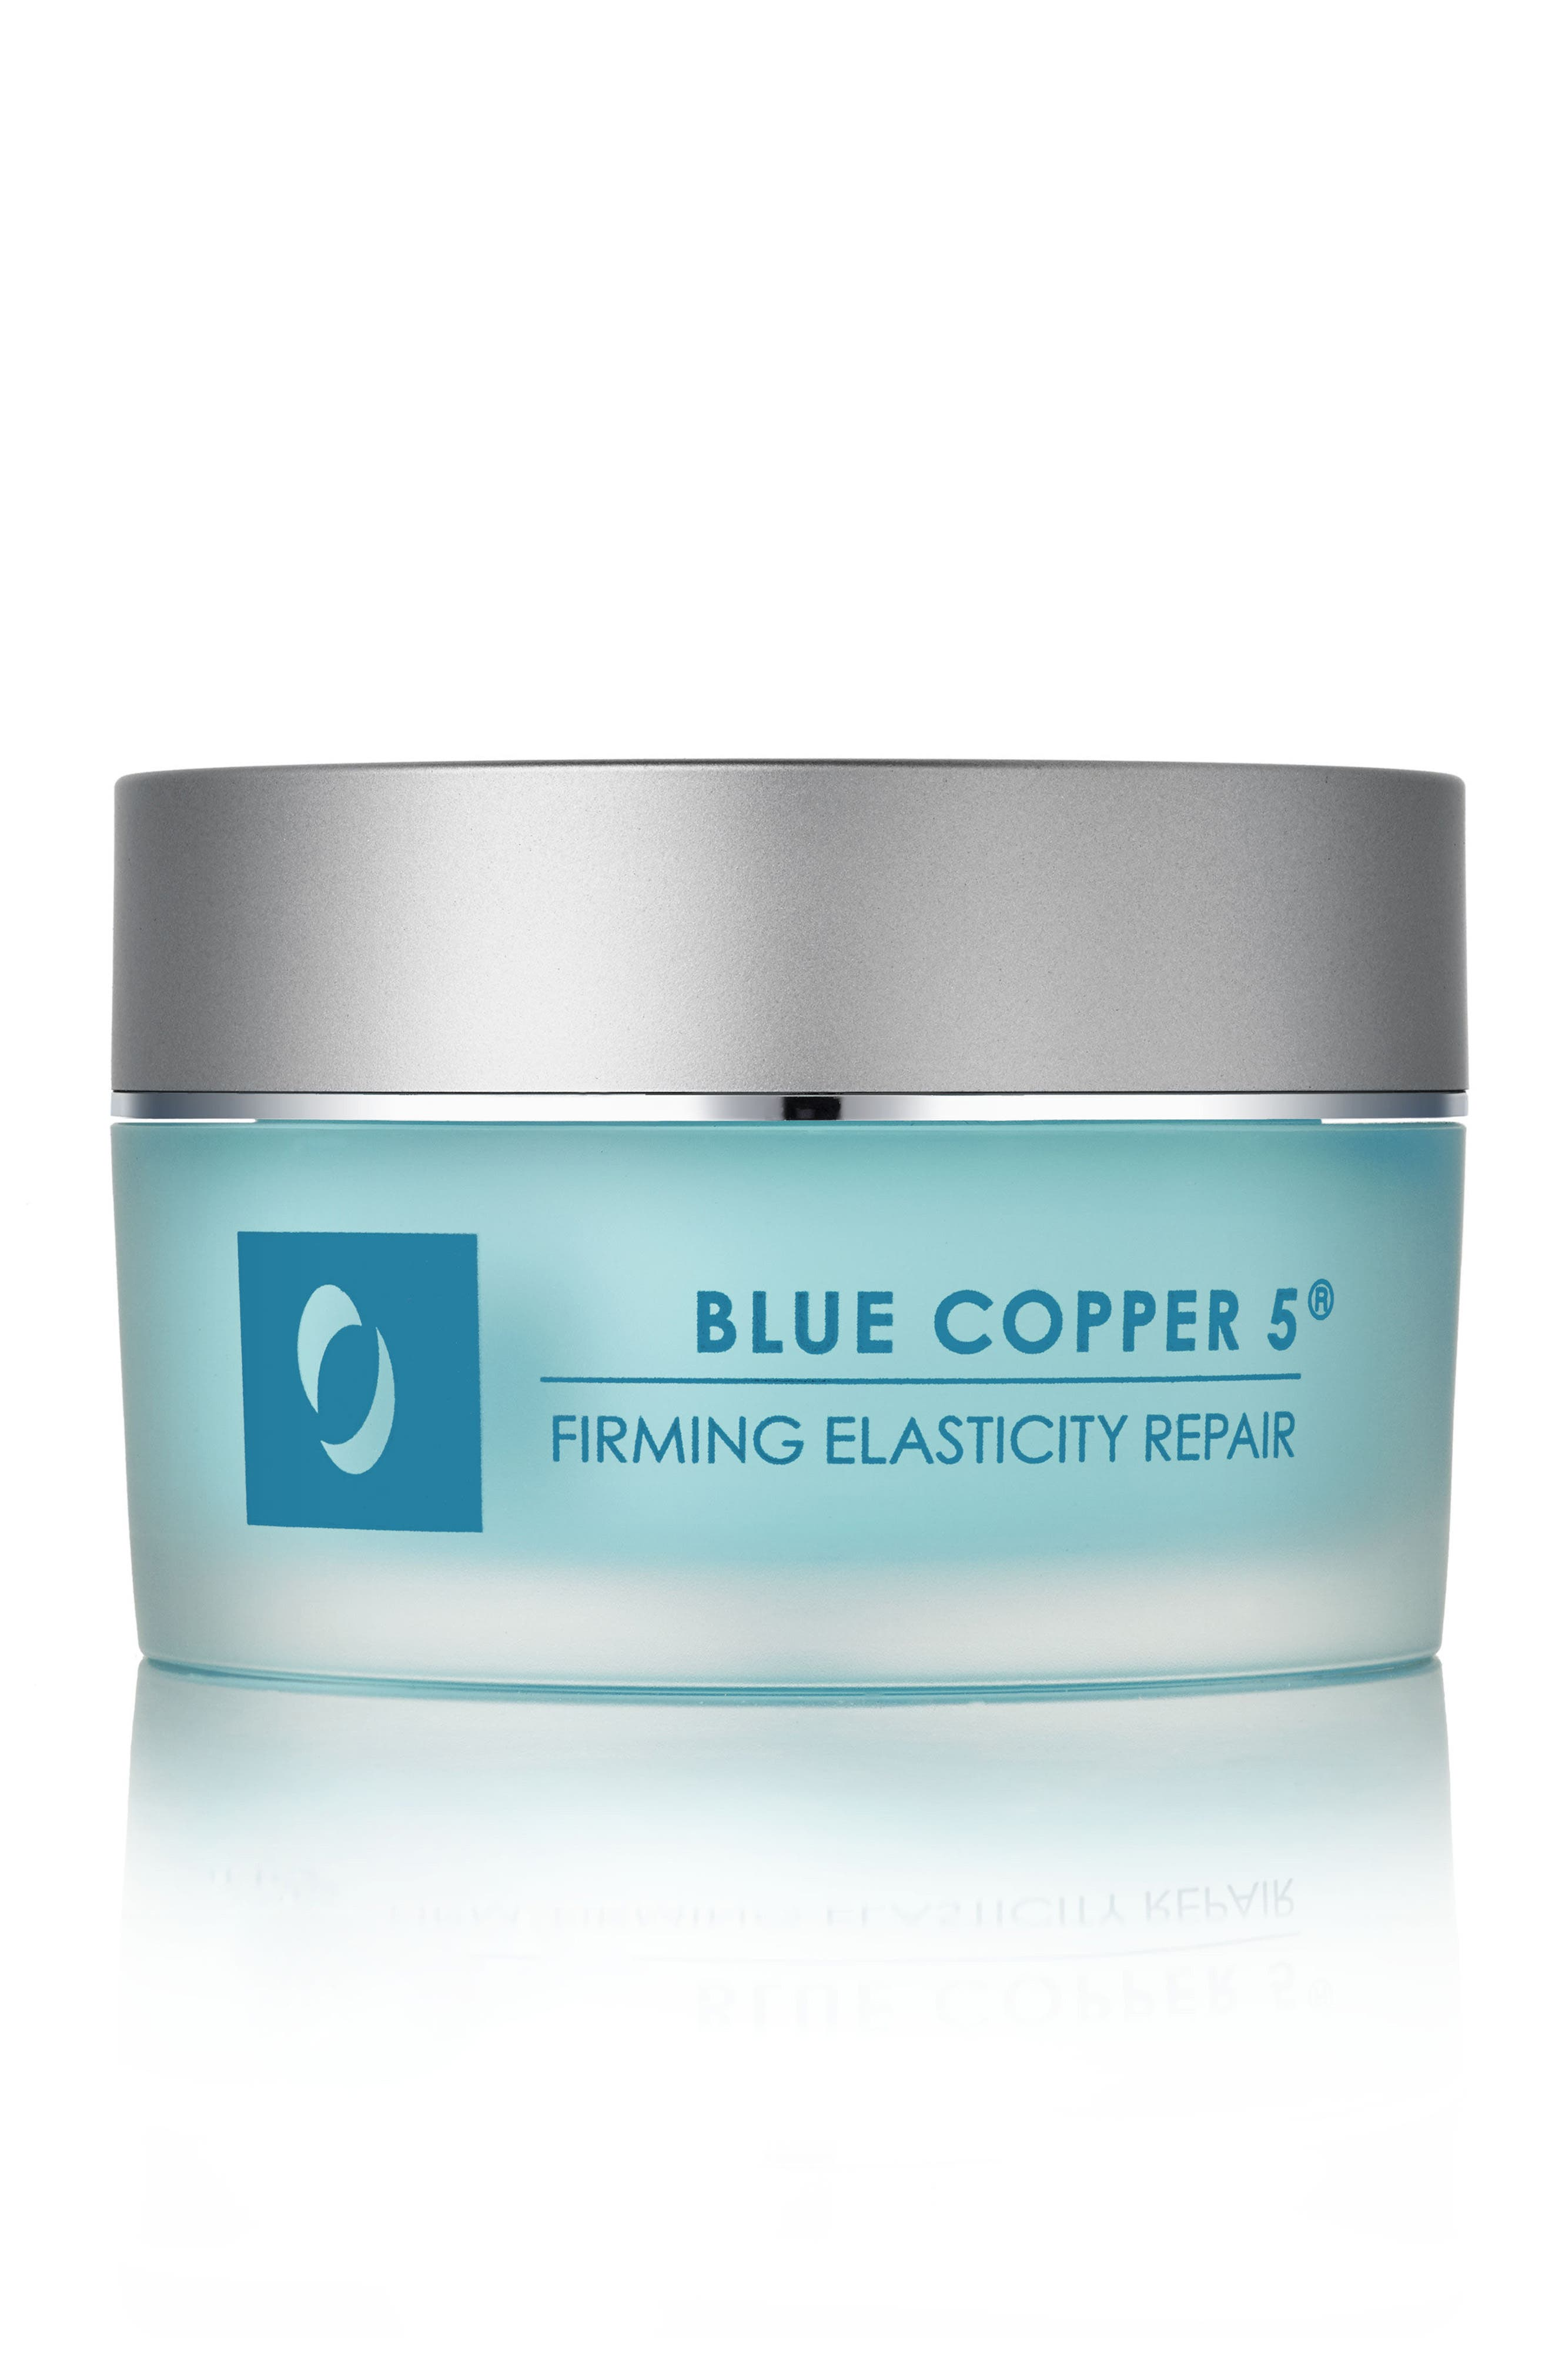 Alternate Image 1 Selected - Osmotics Cosmeceuticals Blue Copper 5 Firming Elasticity Repair ($450 Value)